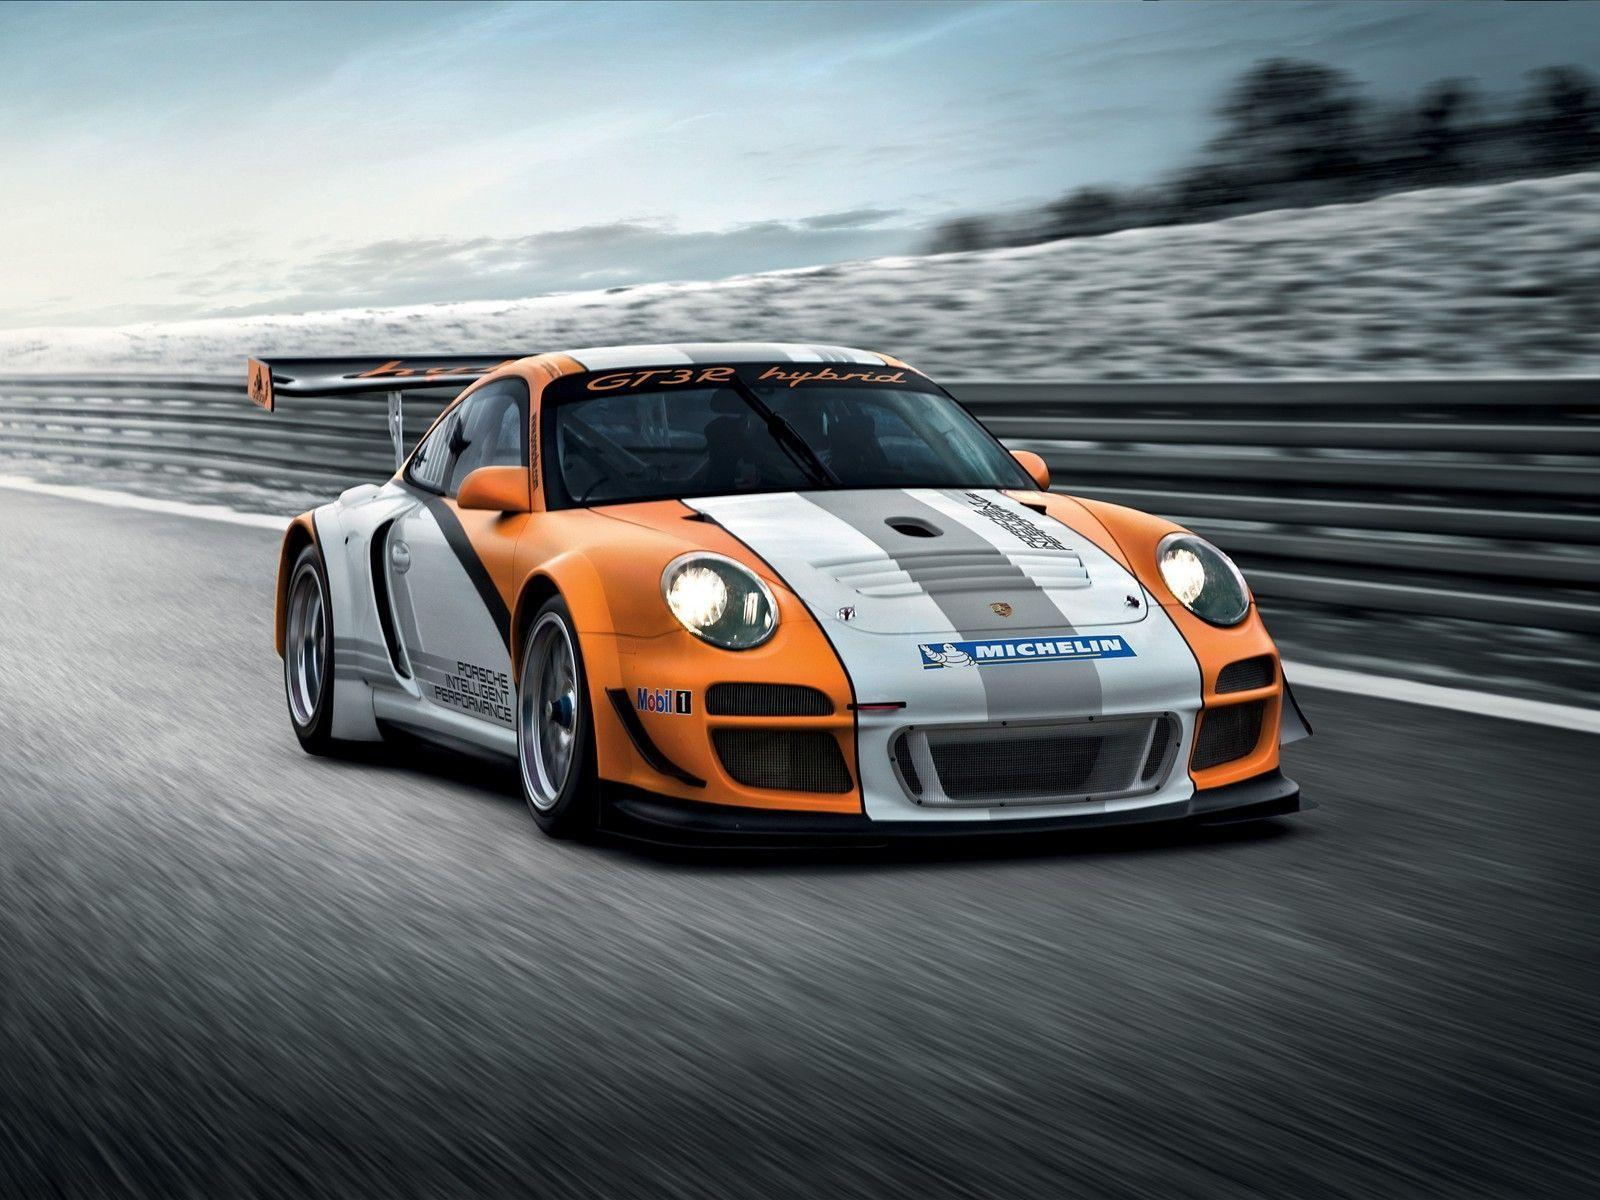 Race Porsche Wallpaper | Wallpaperwonder